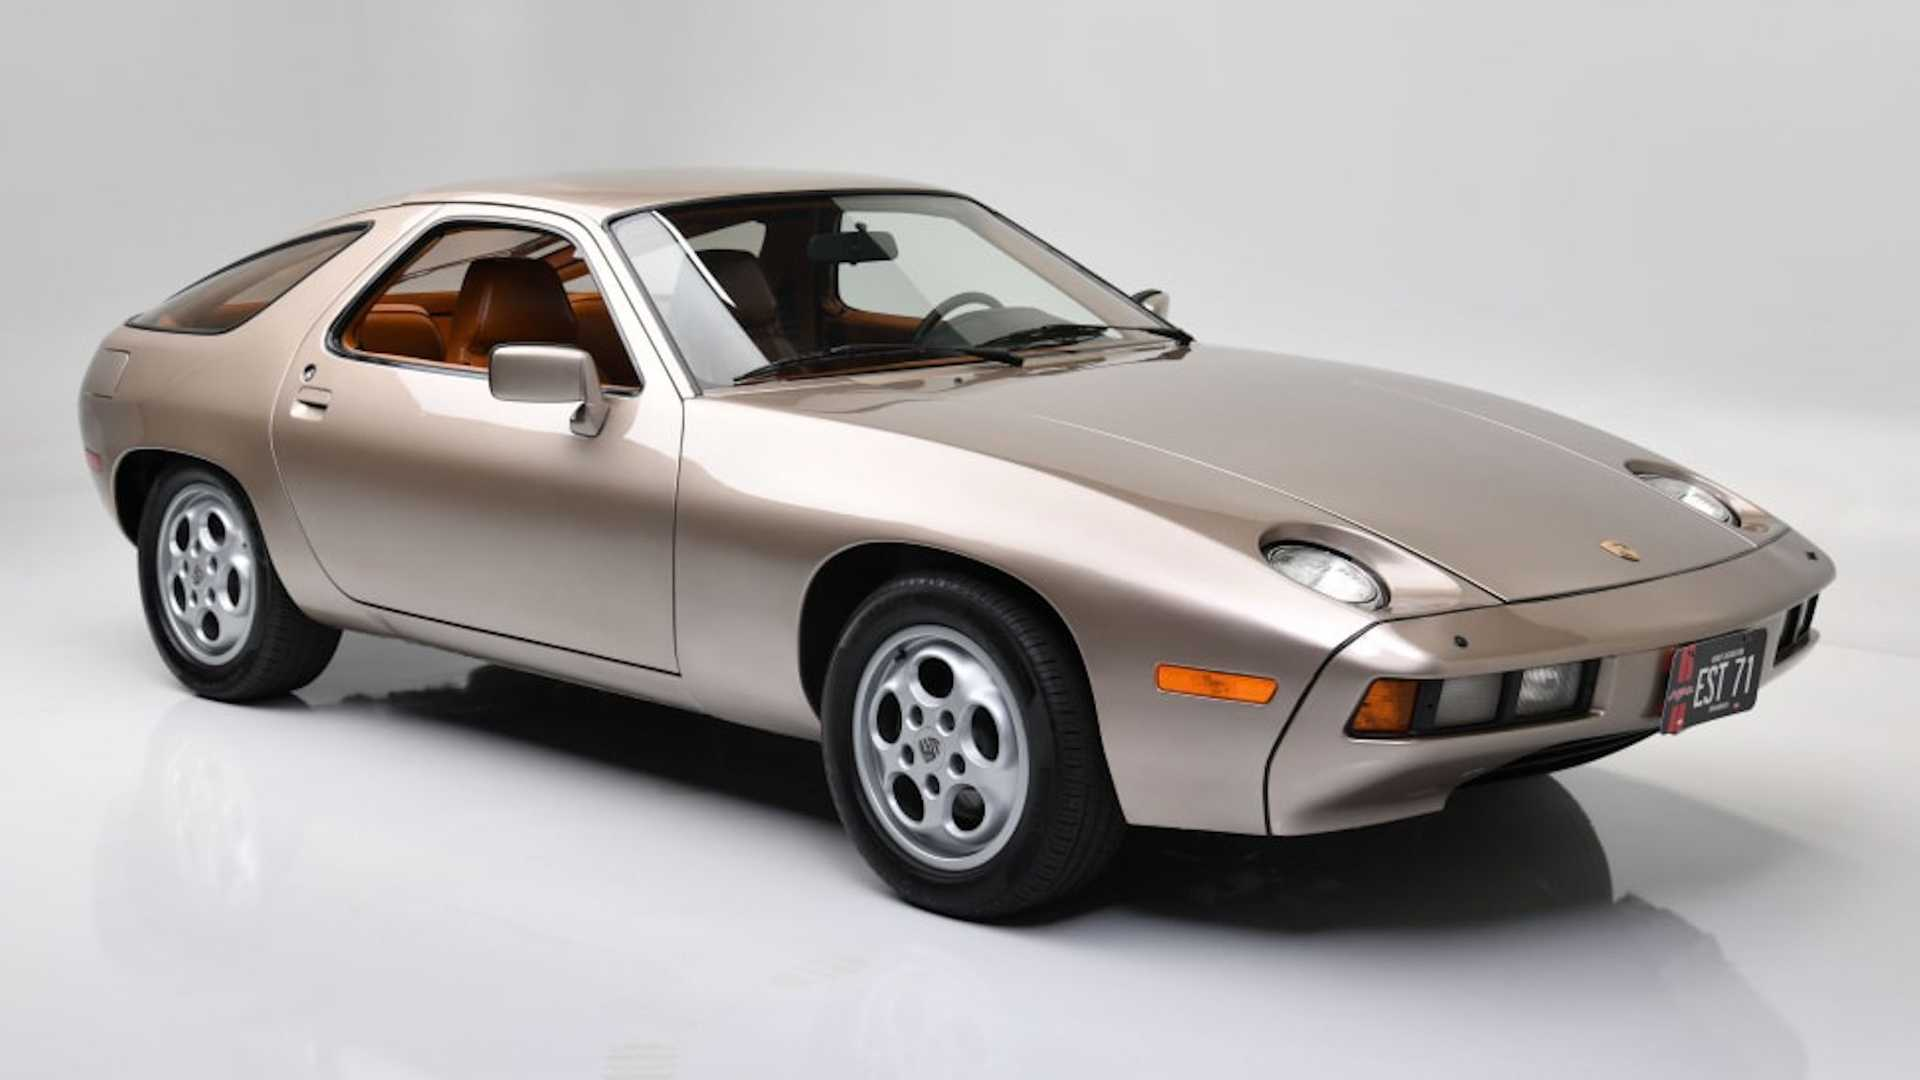 photo of You Can Buy The Porsche 928 Tom Cruise Drove In 'Risky Business' image